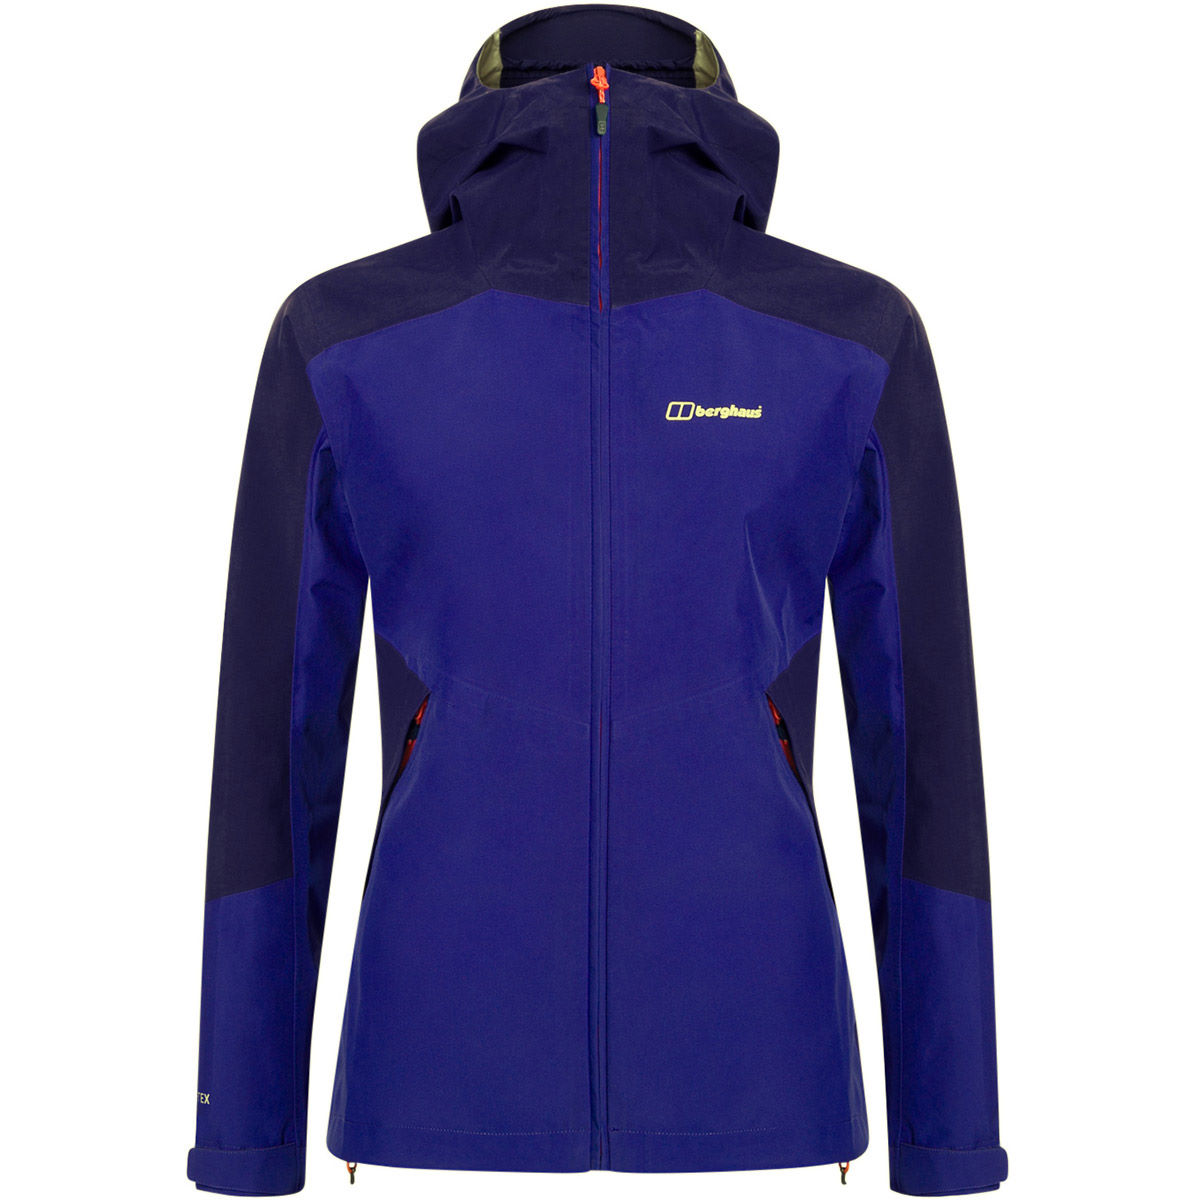 Berghaus Berghaus Womens Parvati Waterproof Jacket   Jackets